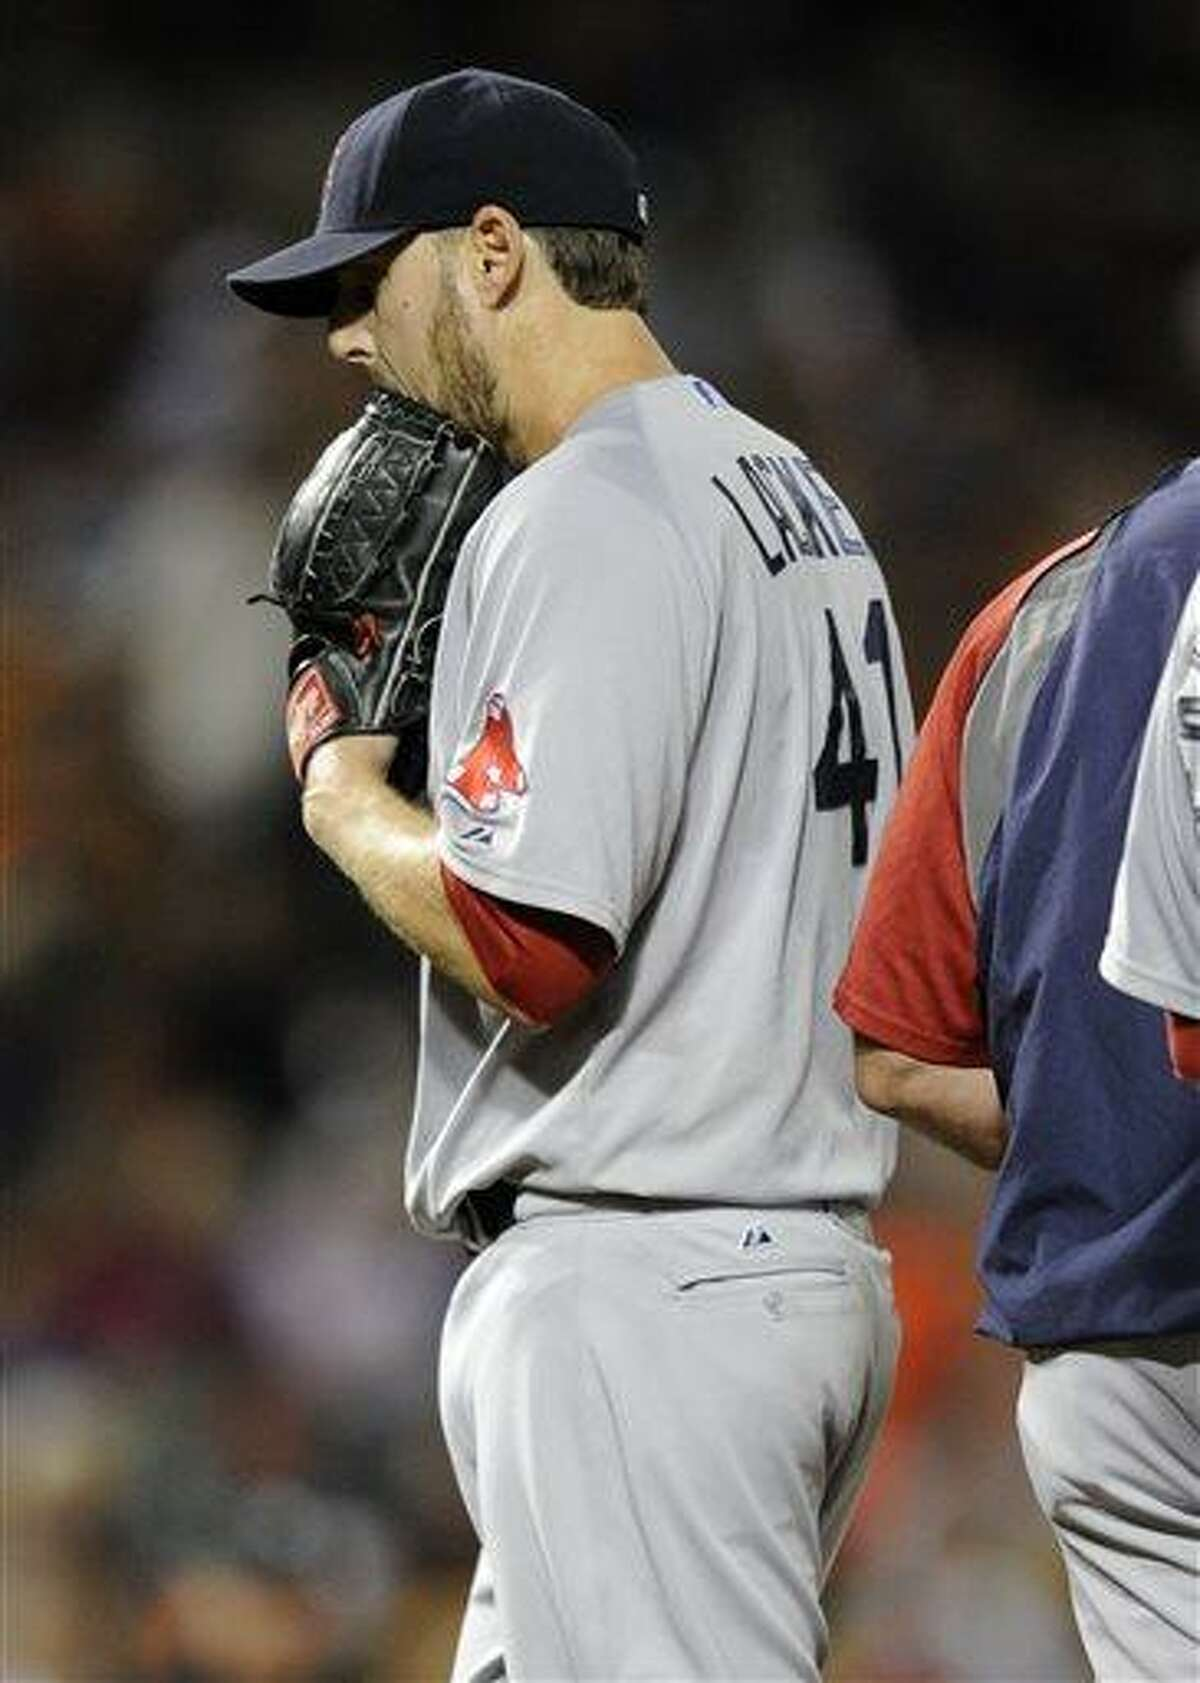 Boston Red Sox starting pitcher John Lackey (41) is pulled from a baseball game against the Baltimore Orioles during the seventh inning on Friday, July 26, 2013, in Baltimore. The Orioles won 6-0. (AP Photo/Nick Wass)